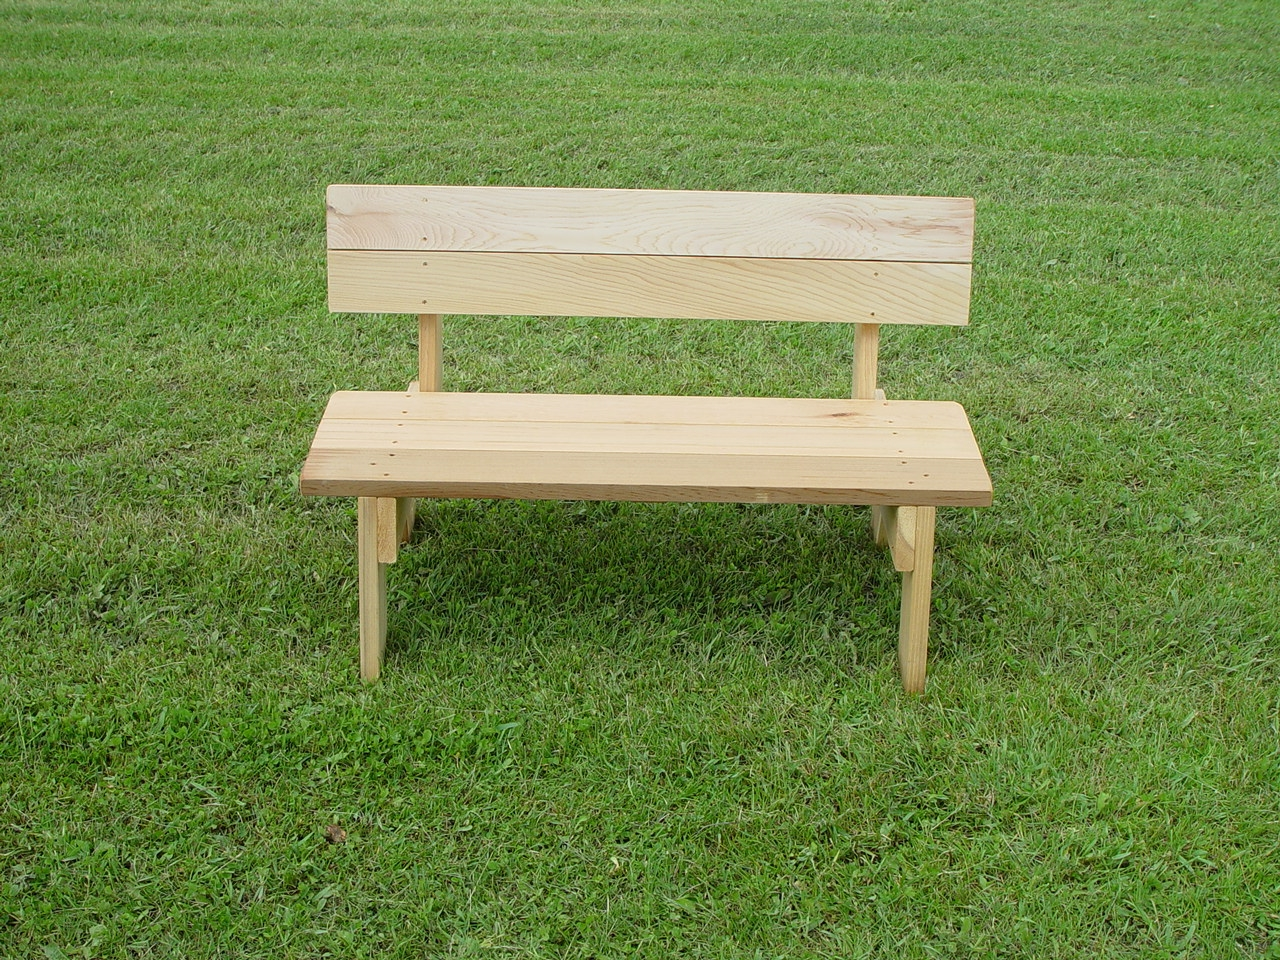 Small 36 Handcrafted Red Cedar Bench Park for Children